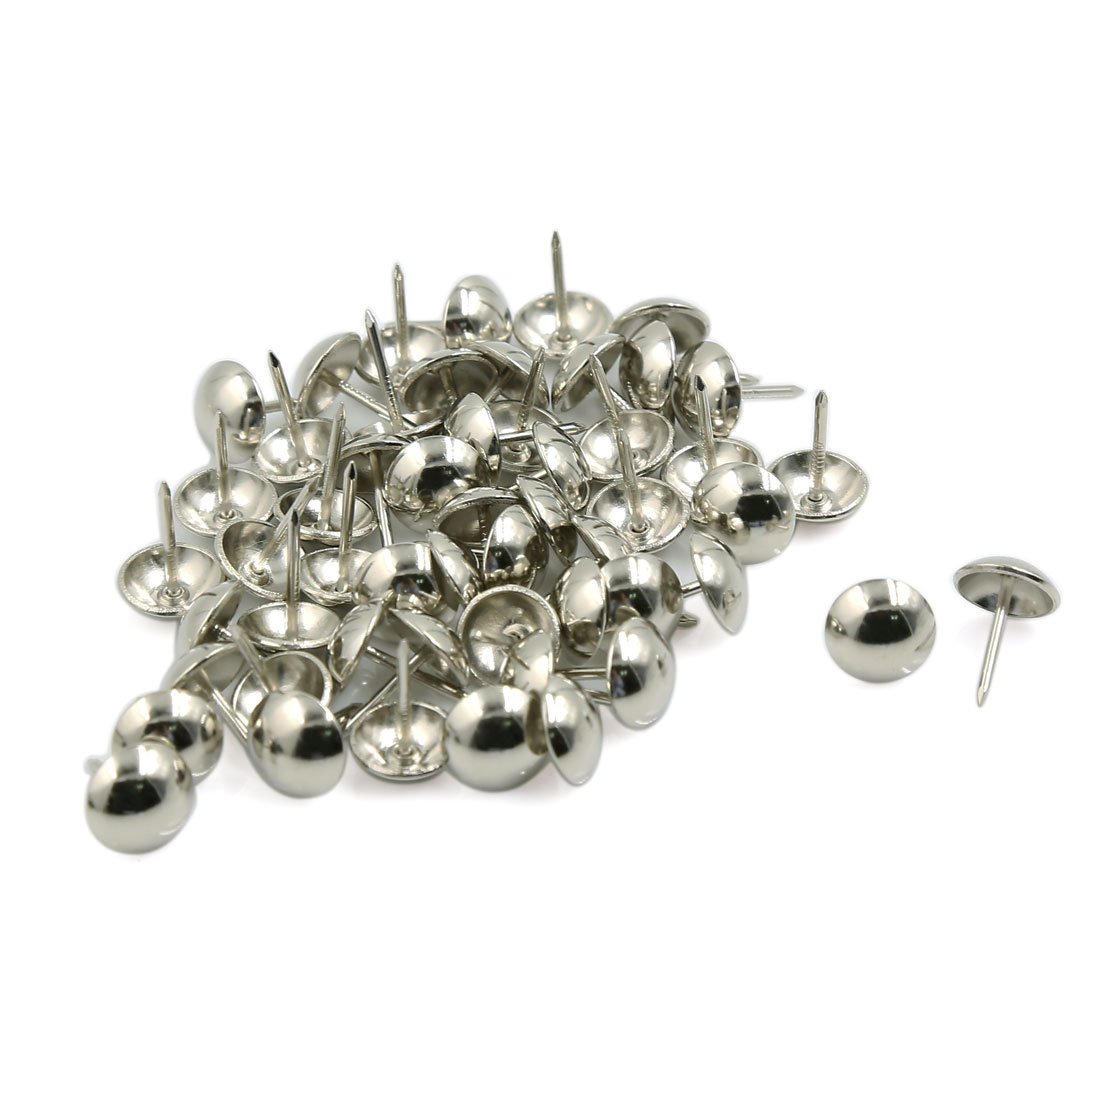 Corkboards Message Boards Steel Wall-Mounted Thumb Tacks Sliver Tone 50 Pcs